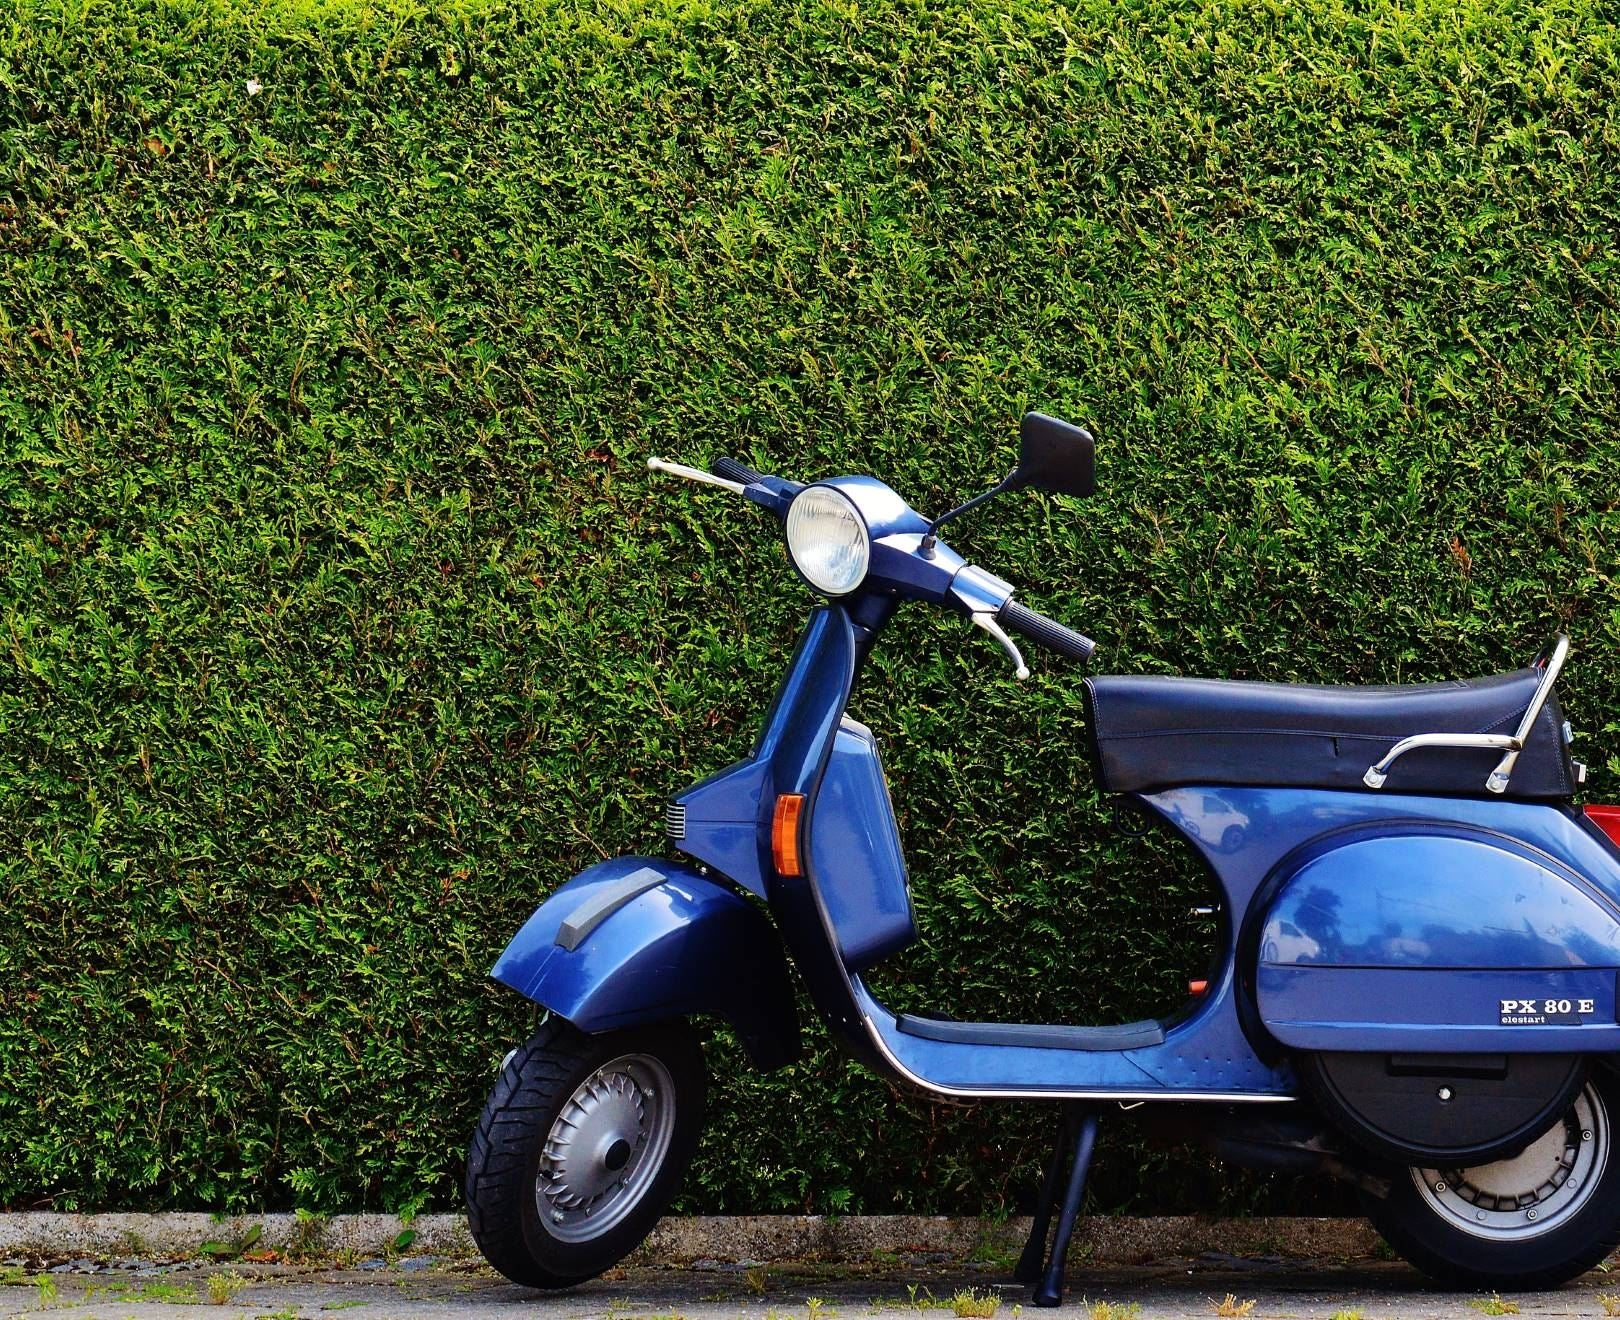 Scooter In Front Of Hedge